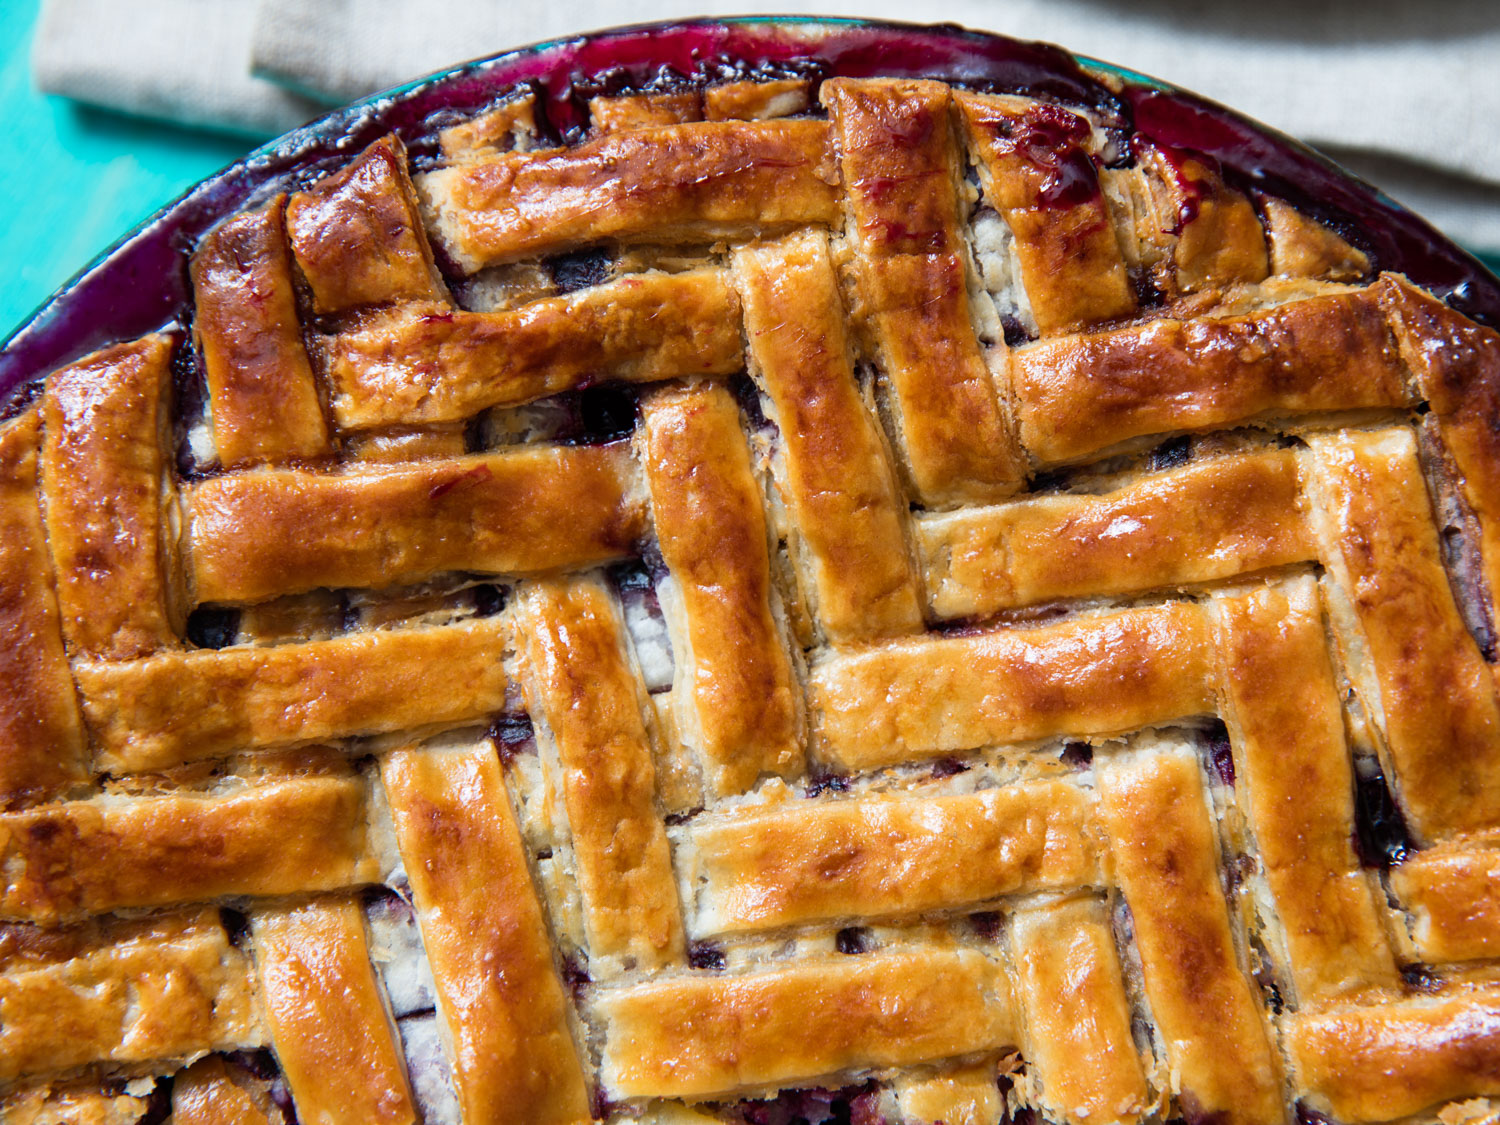 http://www.nobiggie.net/wp-content/uploads/2016/09/Become-a-Pastry-Rock-Star-with-Herringbone-Lattice-Pie.jpg